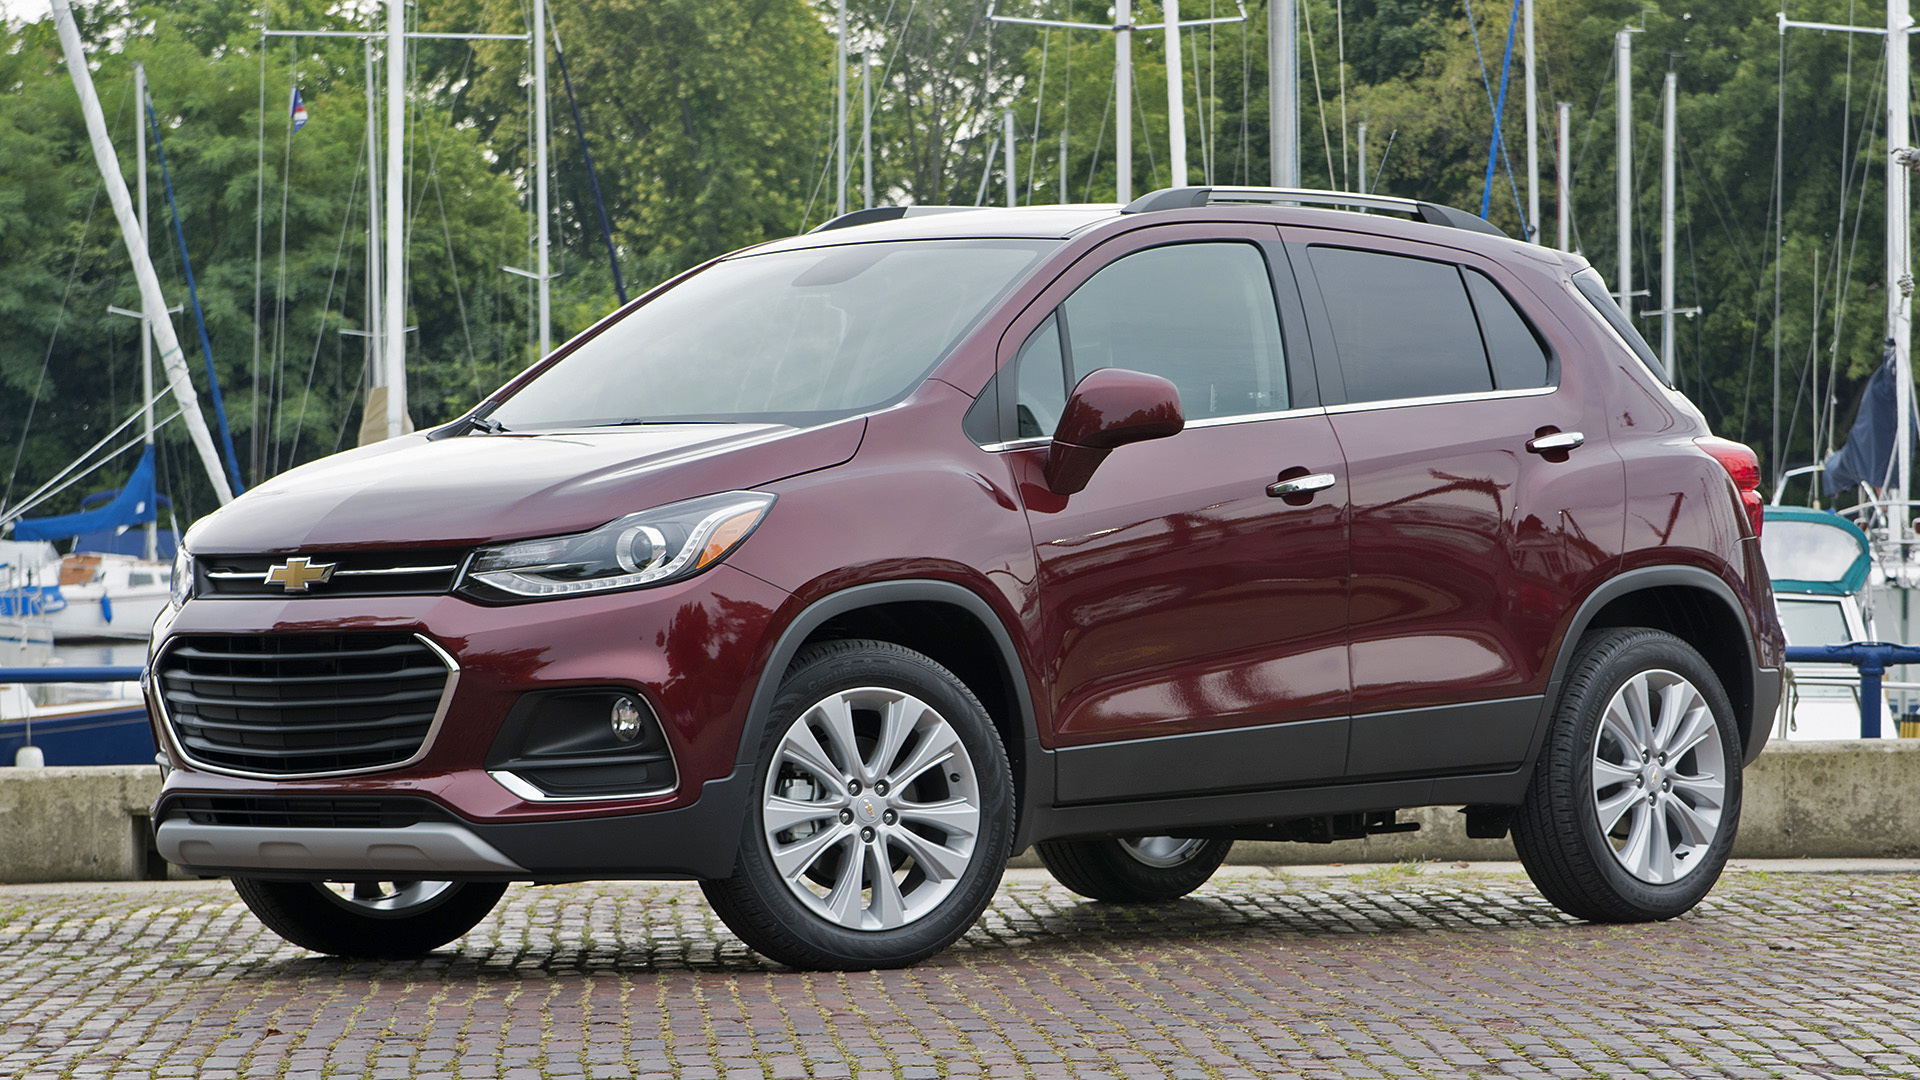 The basic baby crossover  28 Chevrolet Trax First Drive  Autoblog